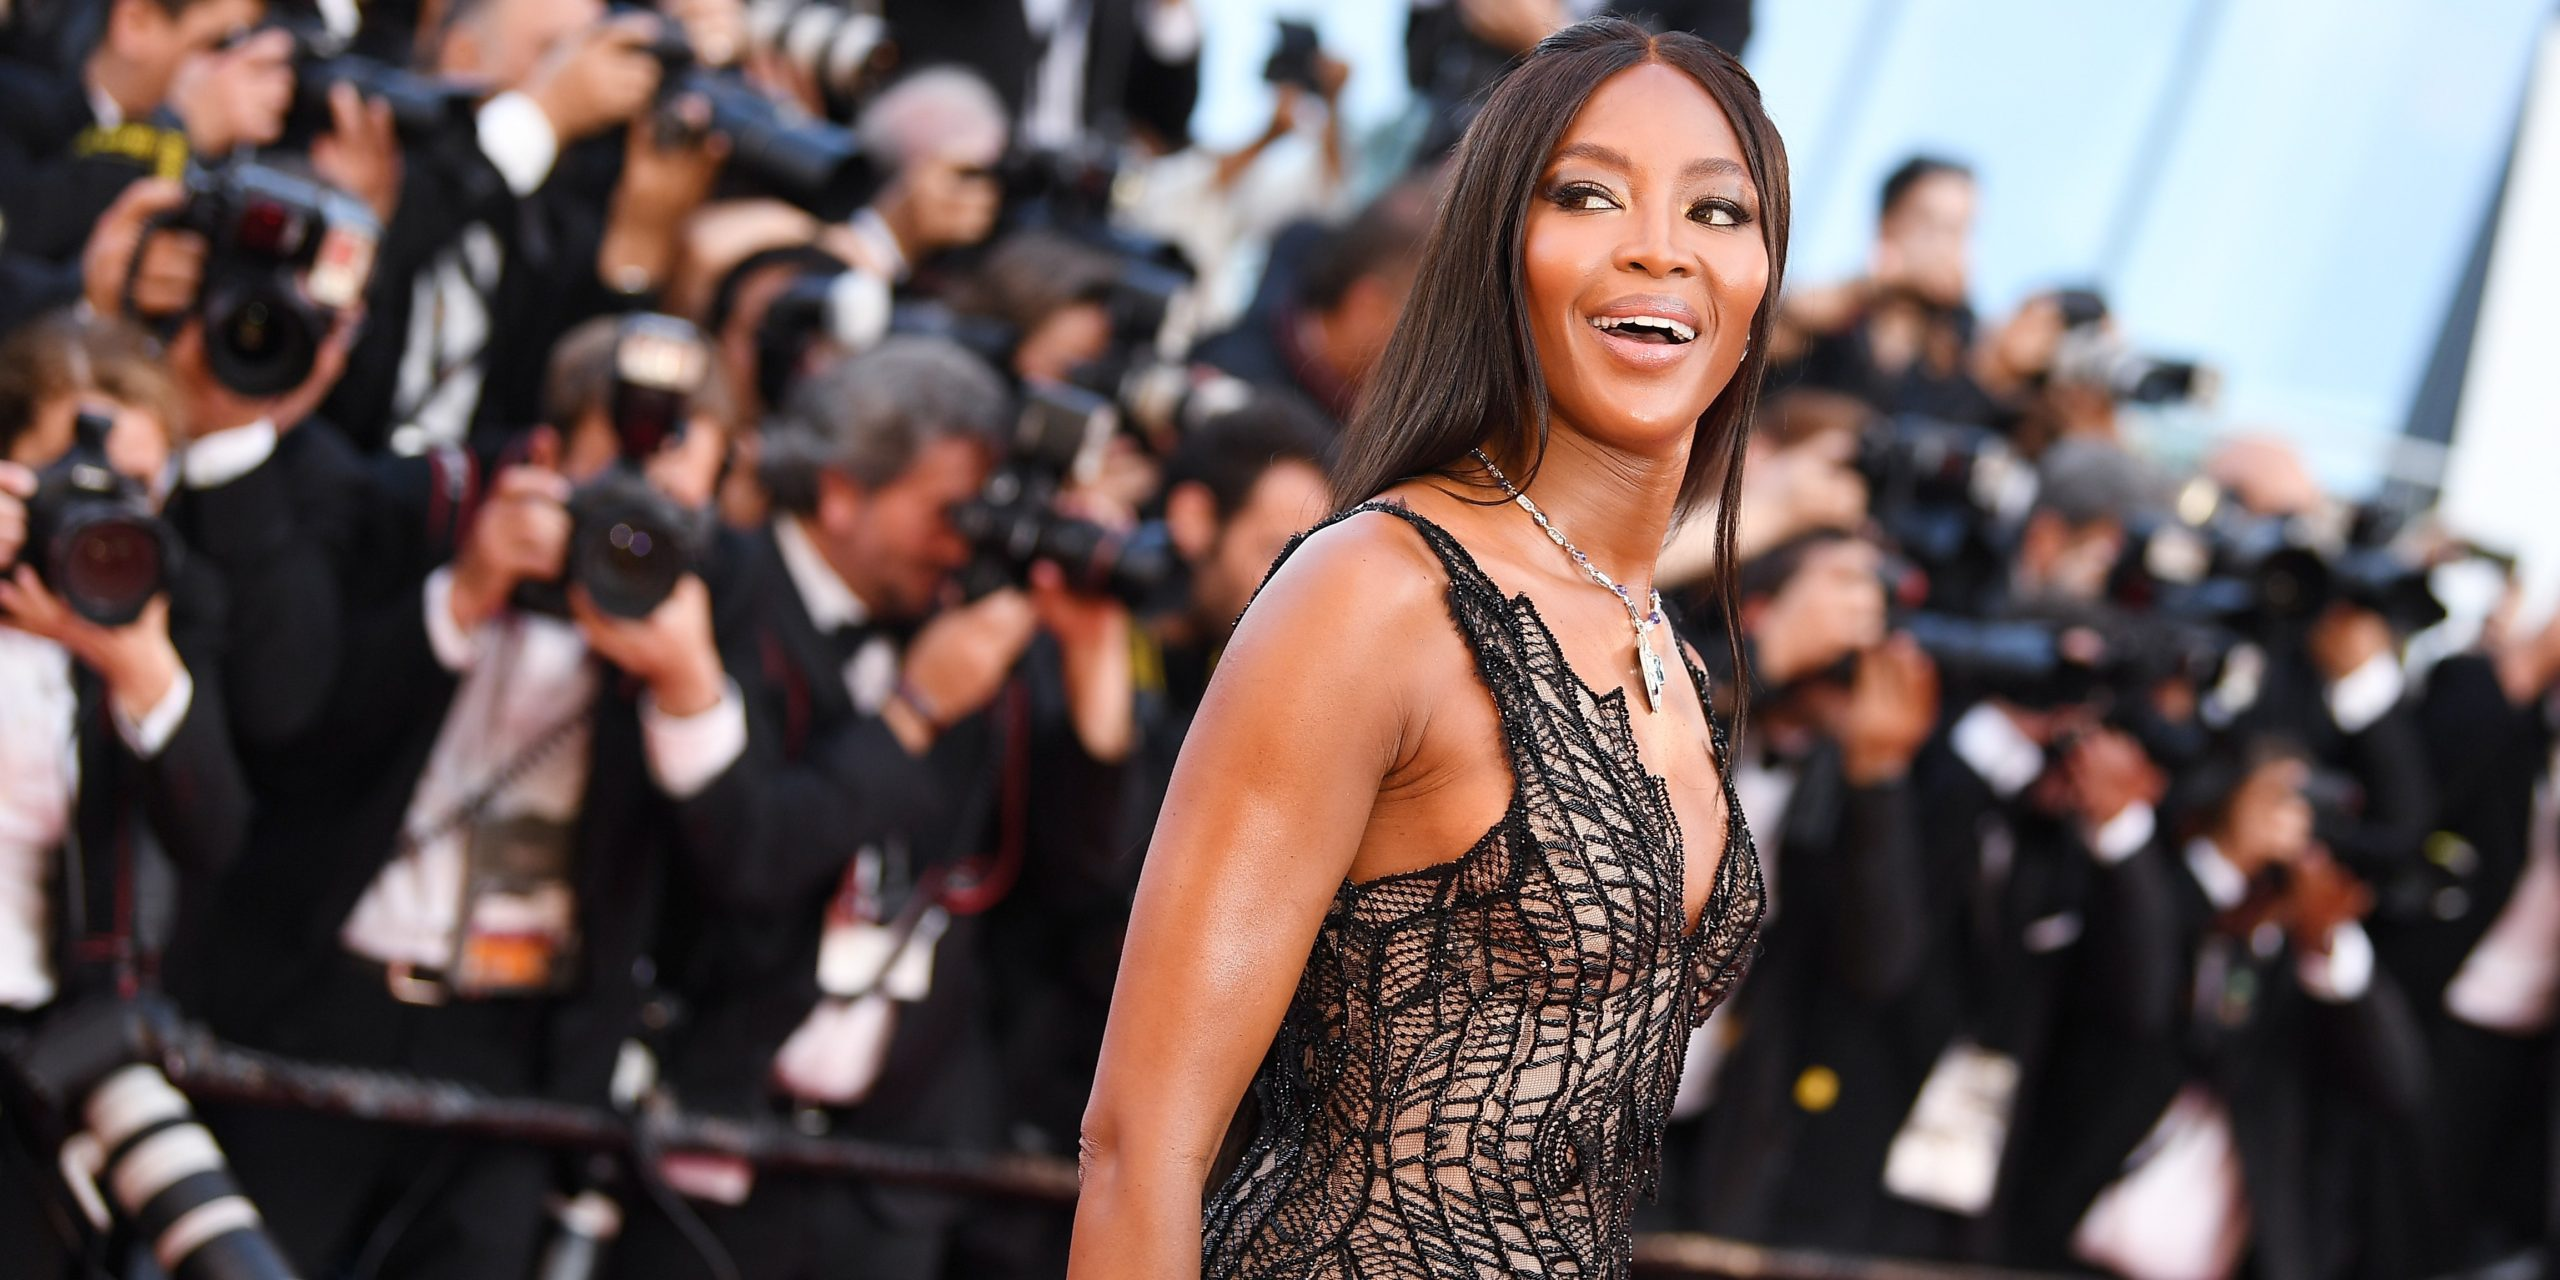 Naomi Campbell Cannes Film Festival Wallpapers scaled - Naomi Campbell Net Worth, Pics, Wallpapers, Career and Biography